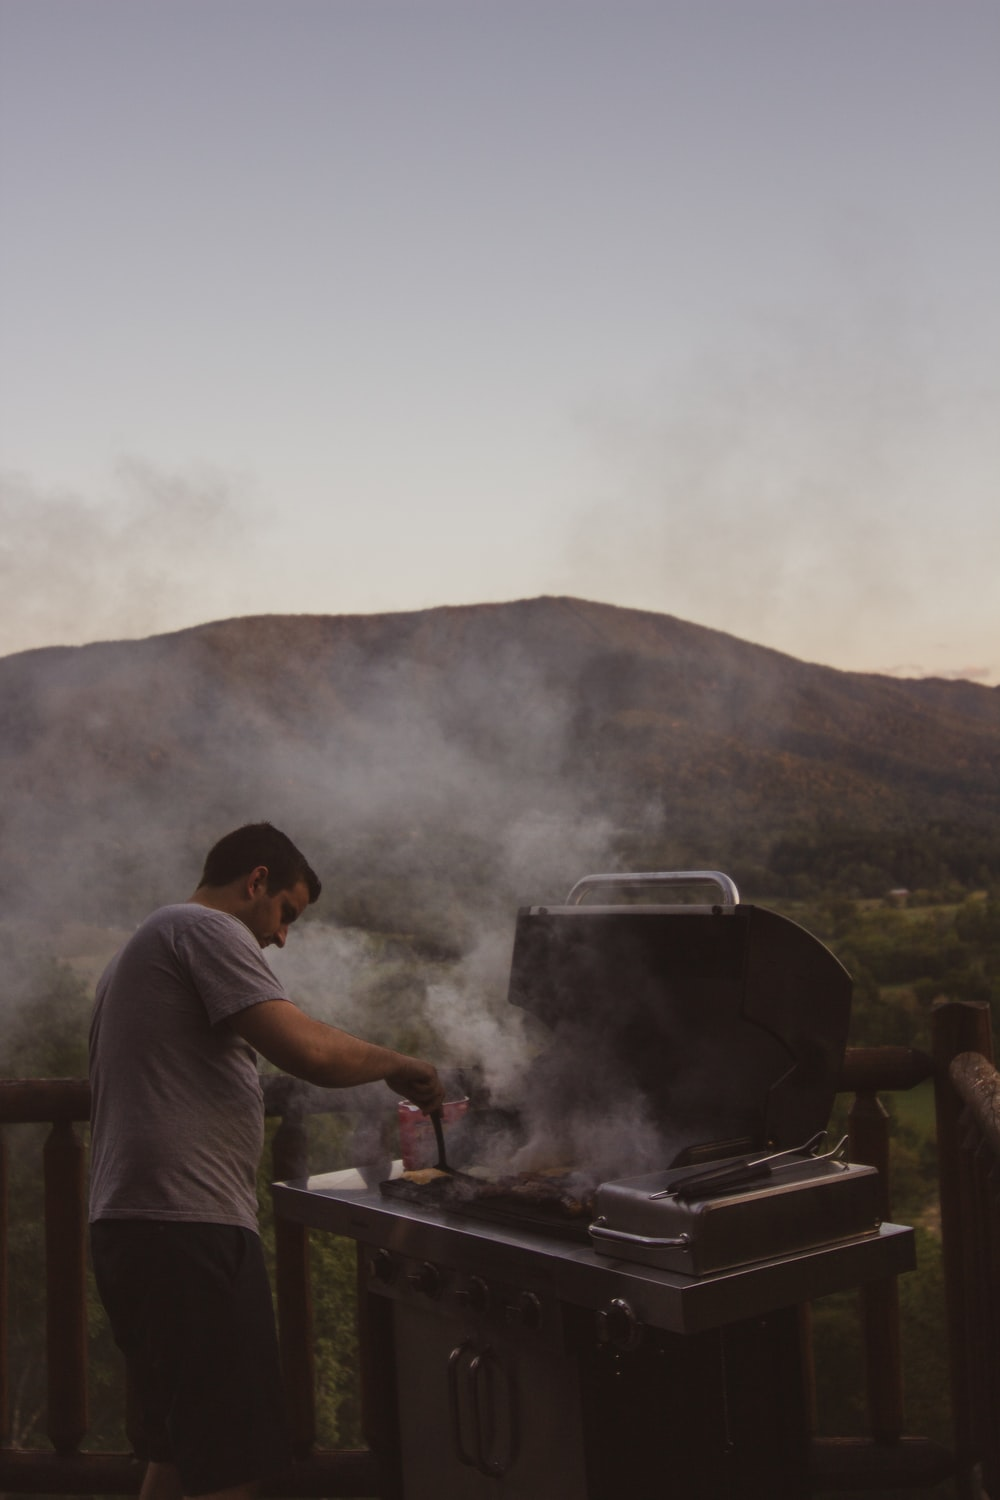 man cooking on charcoal grill